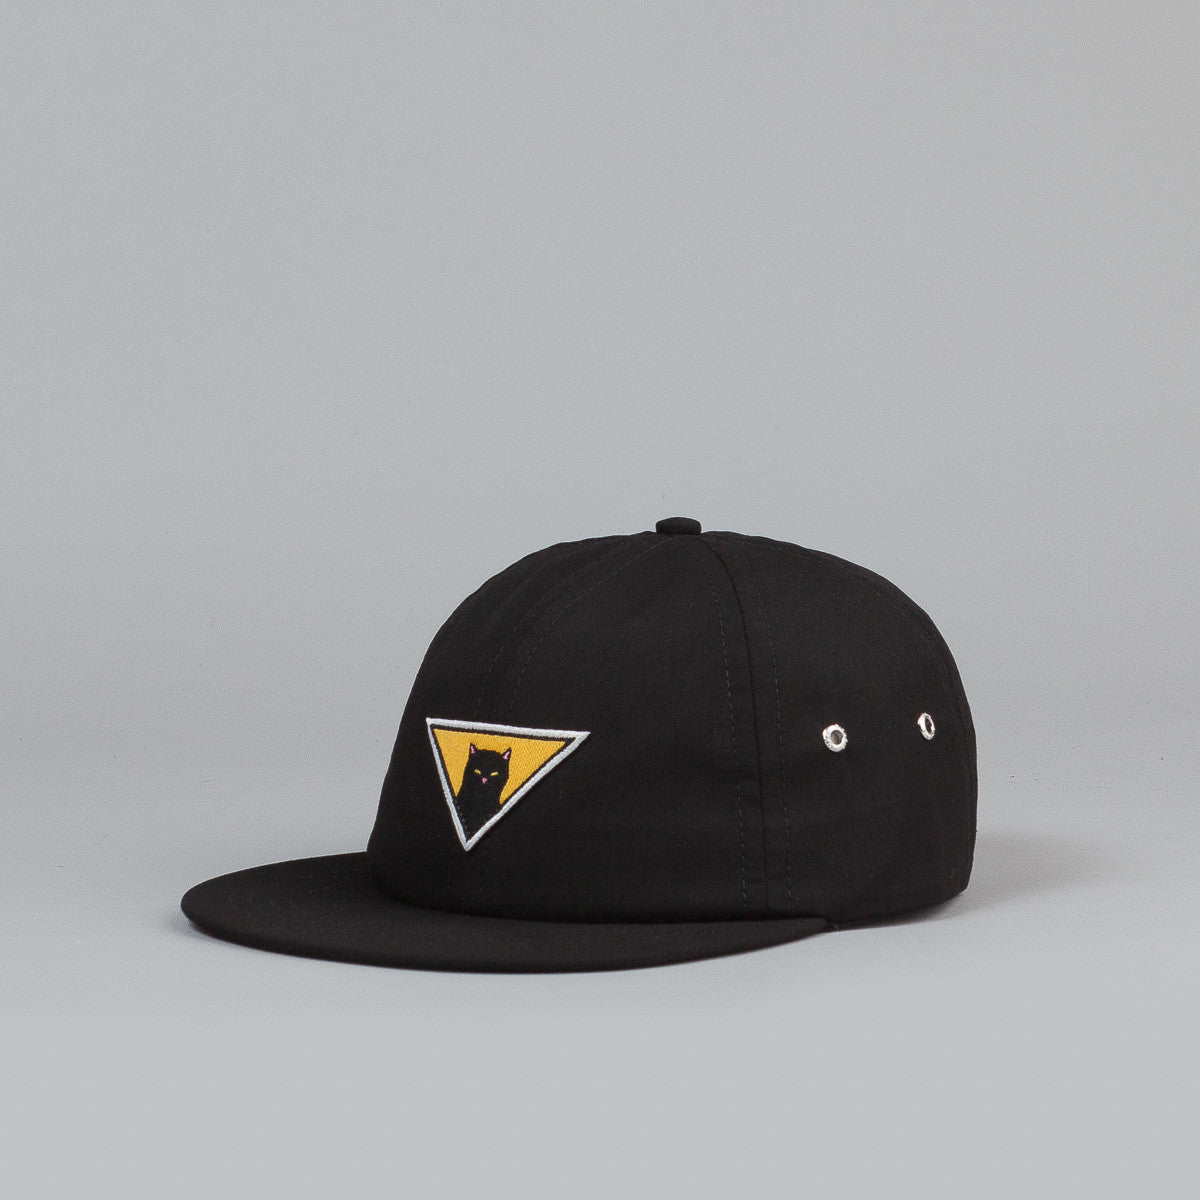 Rip N Dip Neighbourhood Watch 6 Panel Cap- Black